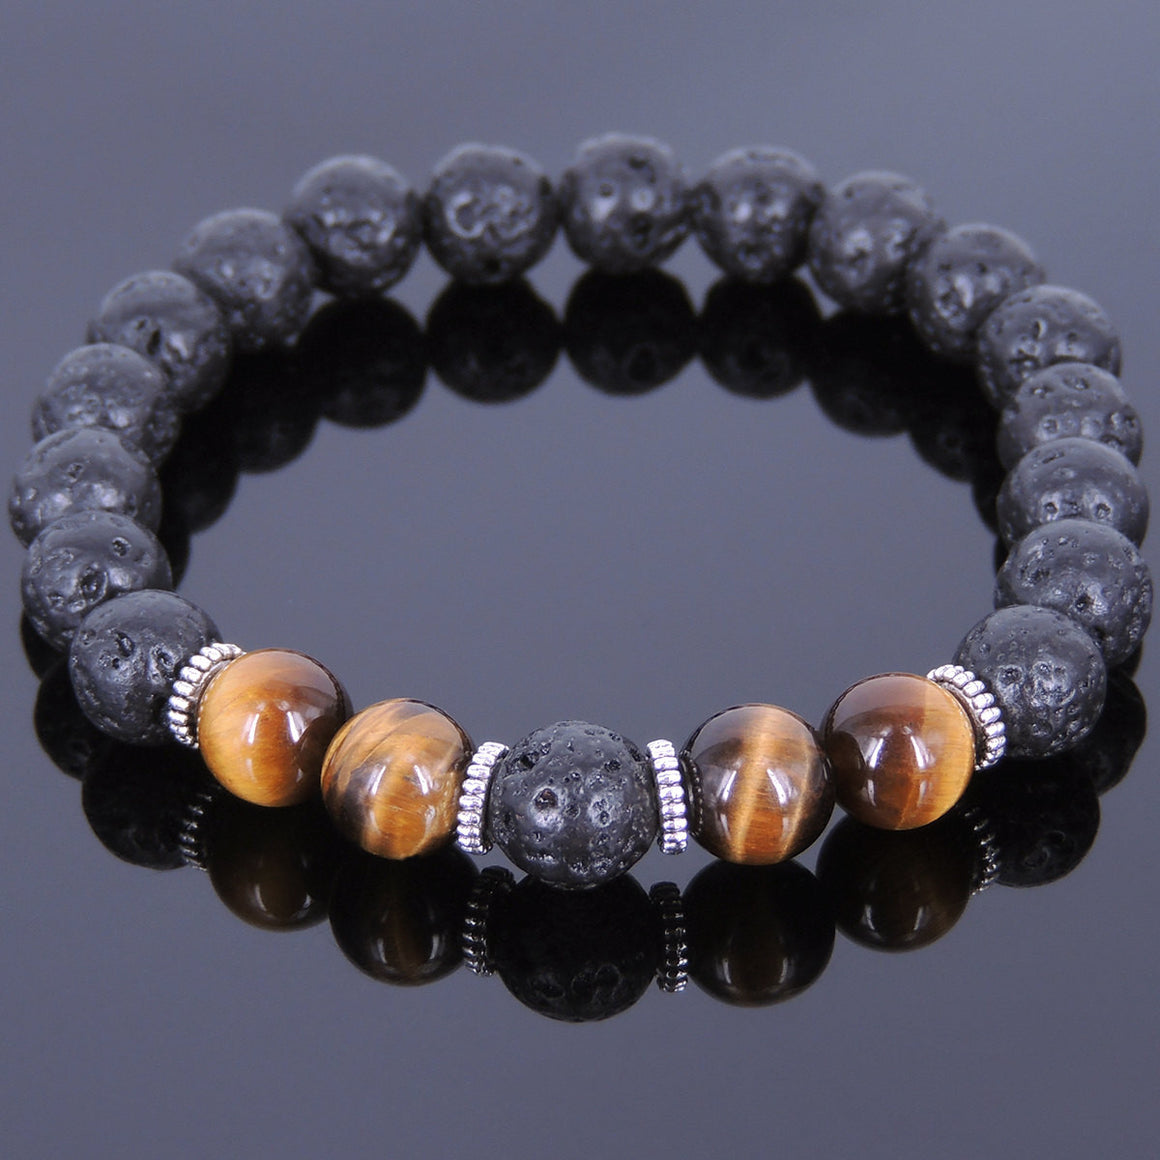 Brown Tiger Eye & Lava Rock Healing Gemstone Bracelet with Tibetan Silver Spacers - Handmade by Gem & Silver TSB097